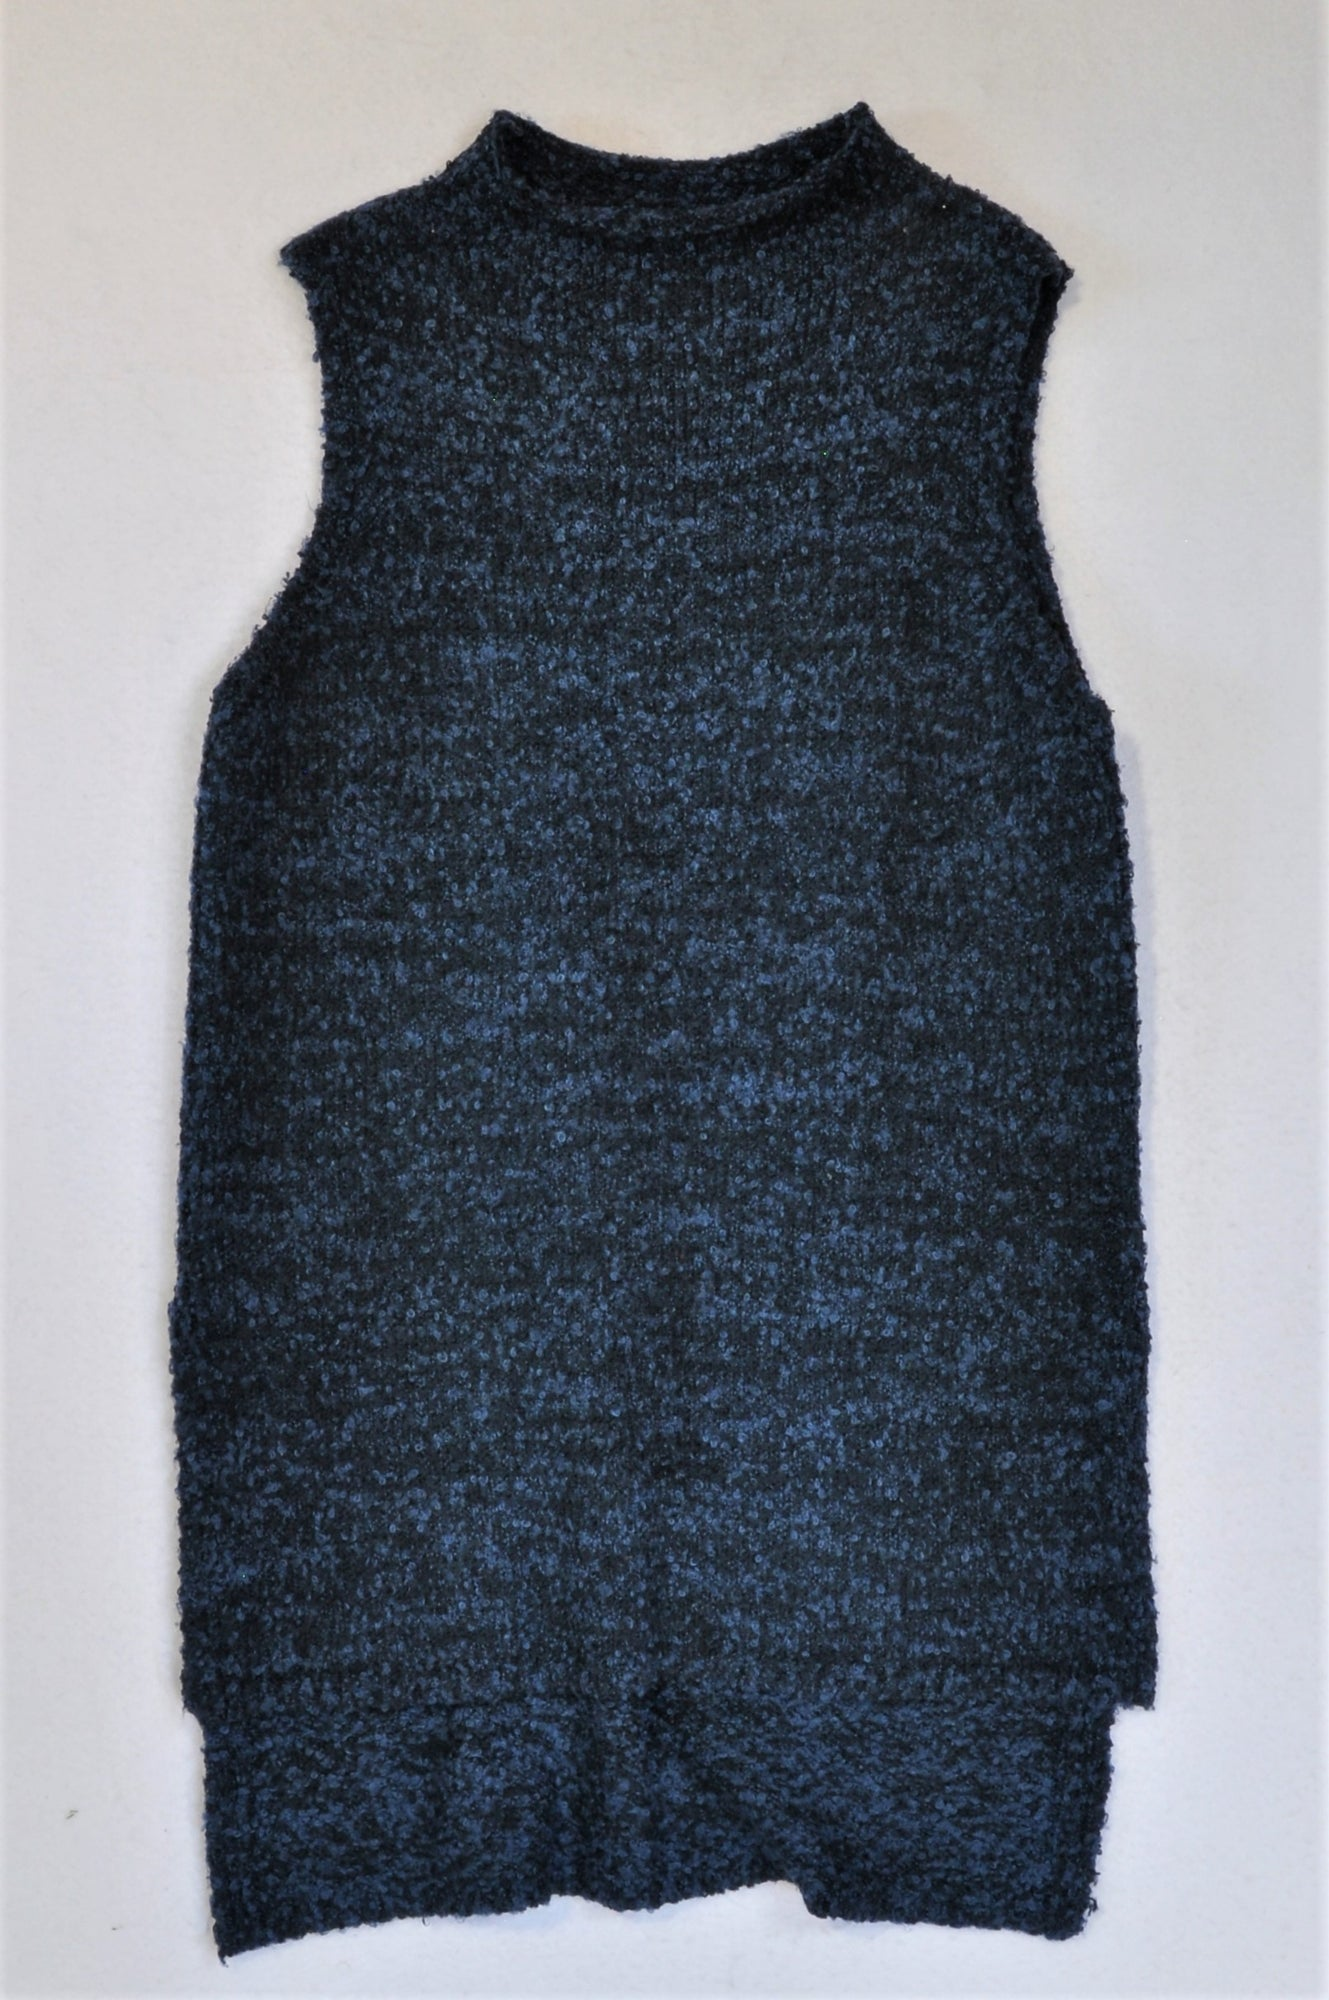 Woolworths Blue Knit Top Women Size M